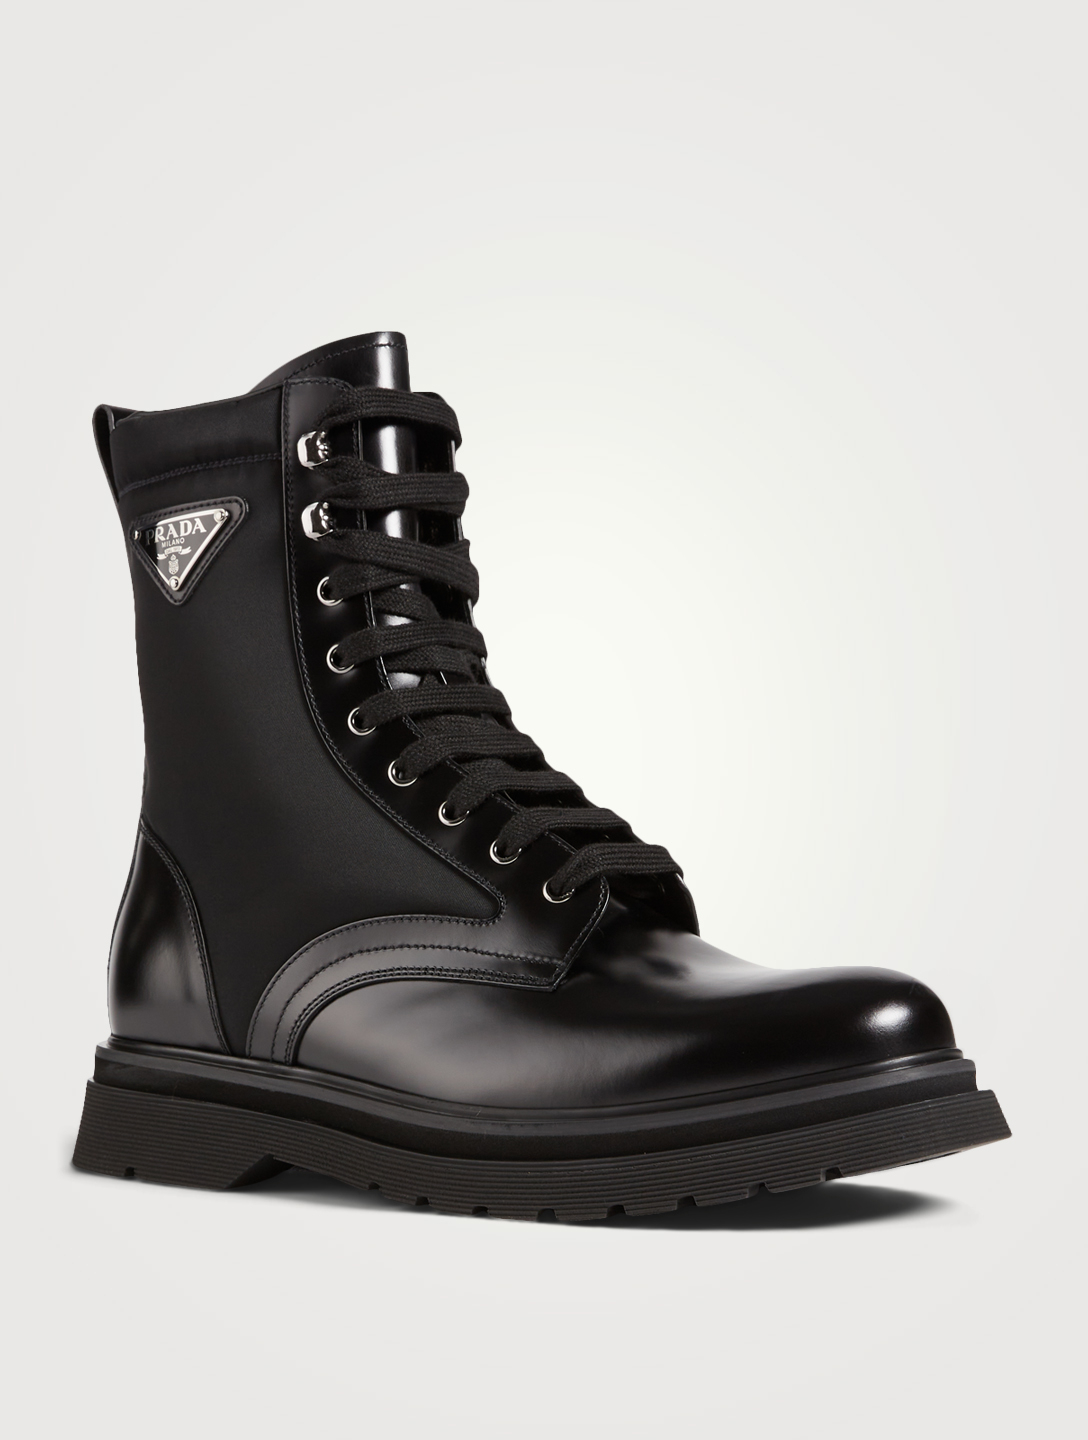 PRADA Leather And Nylon Combat Boots Men's Black